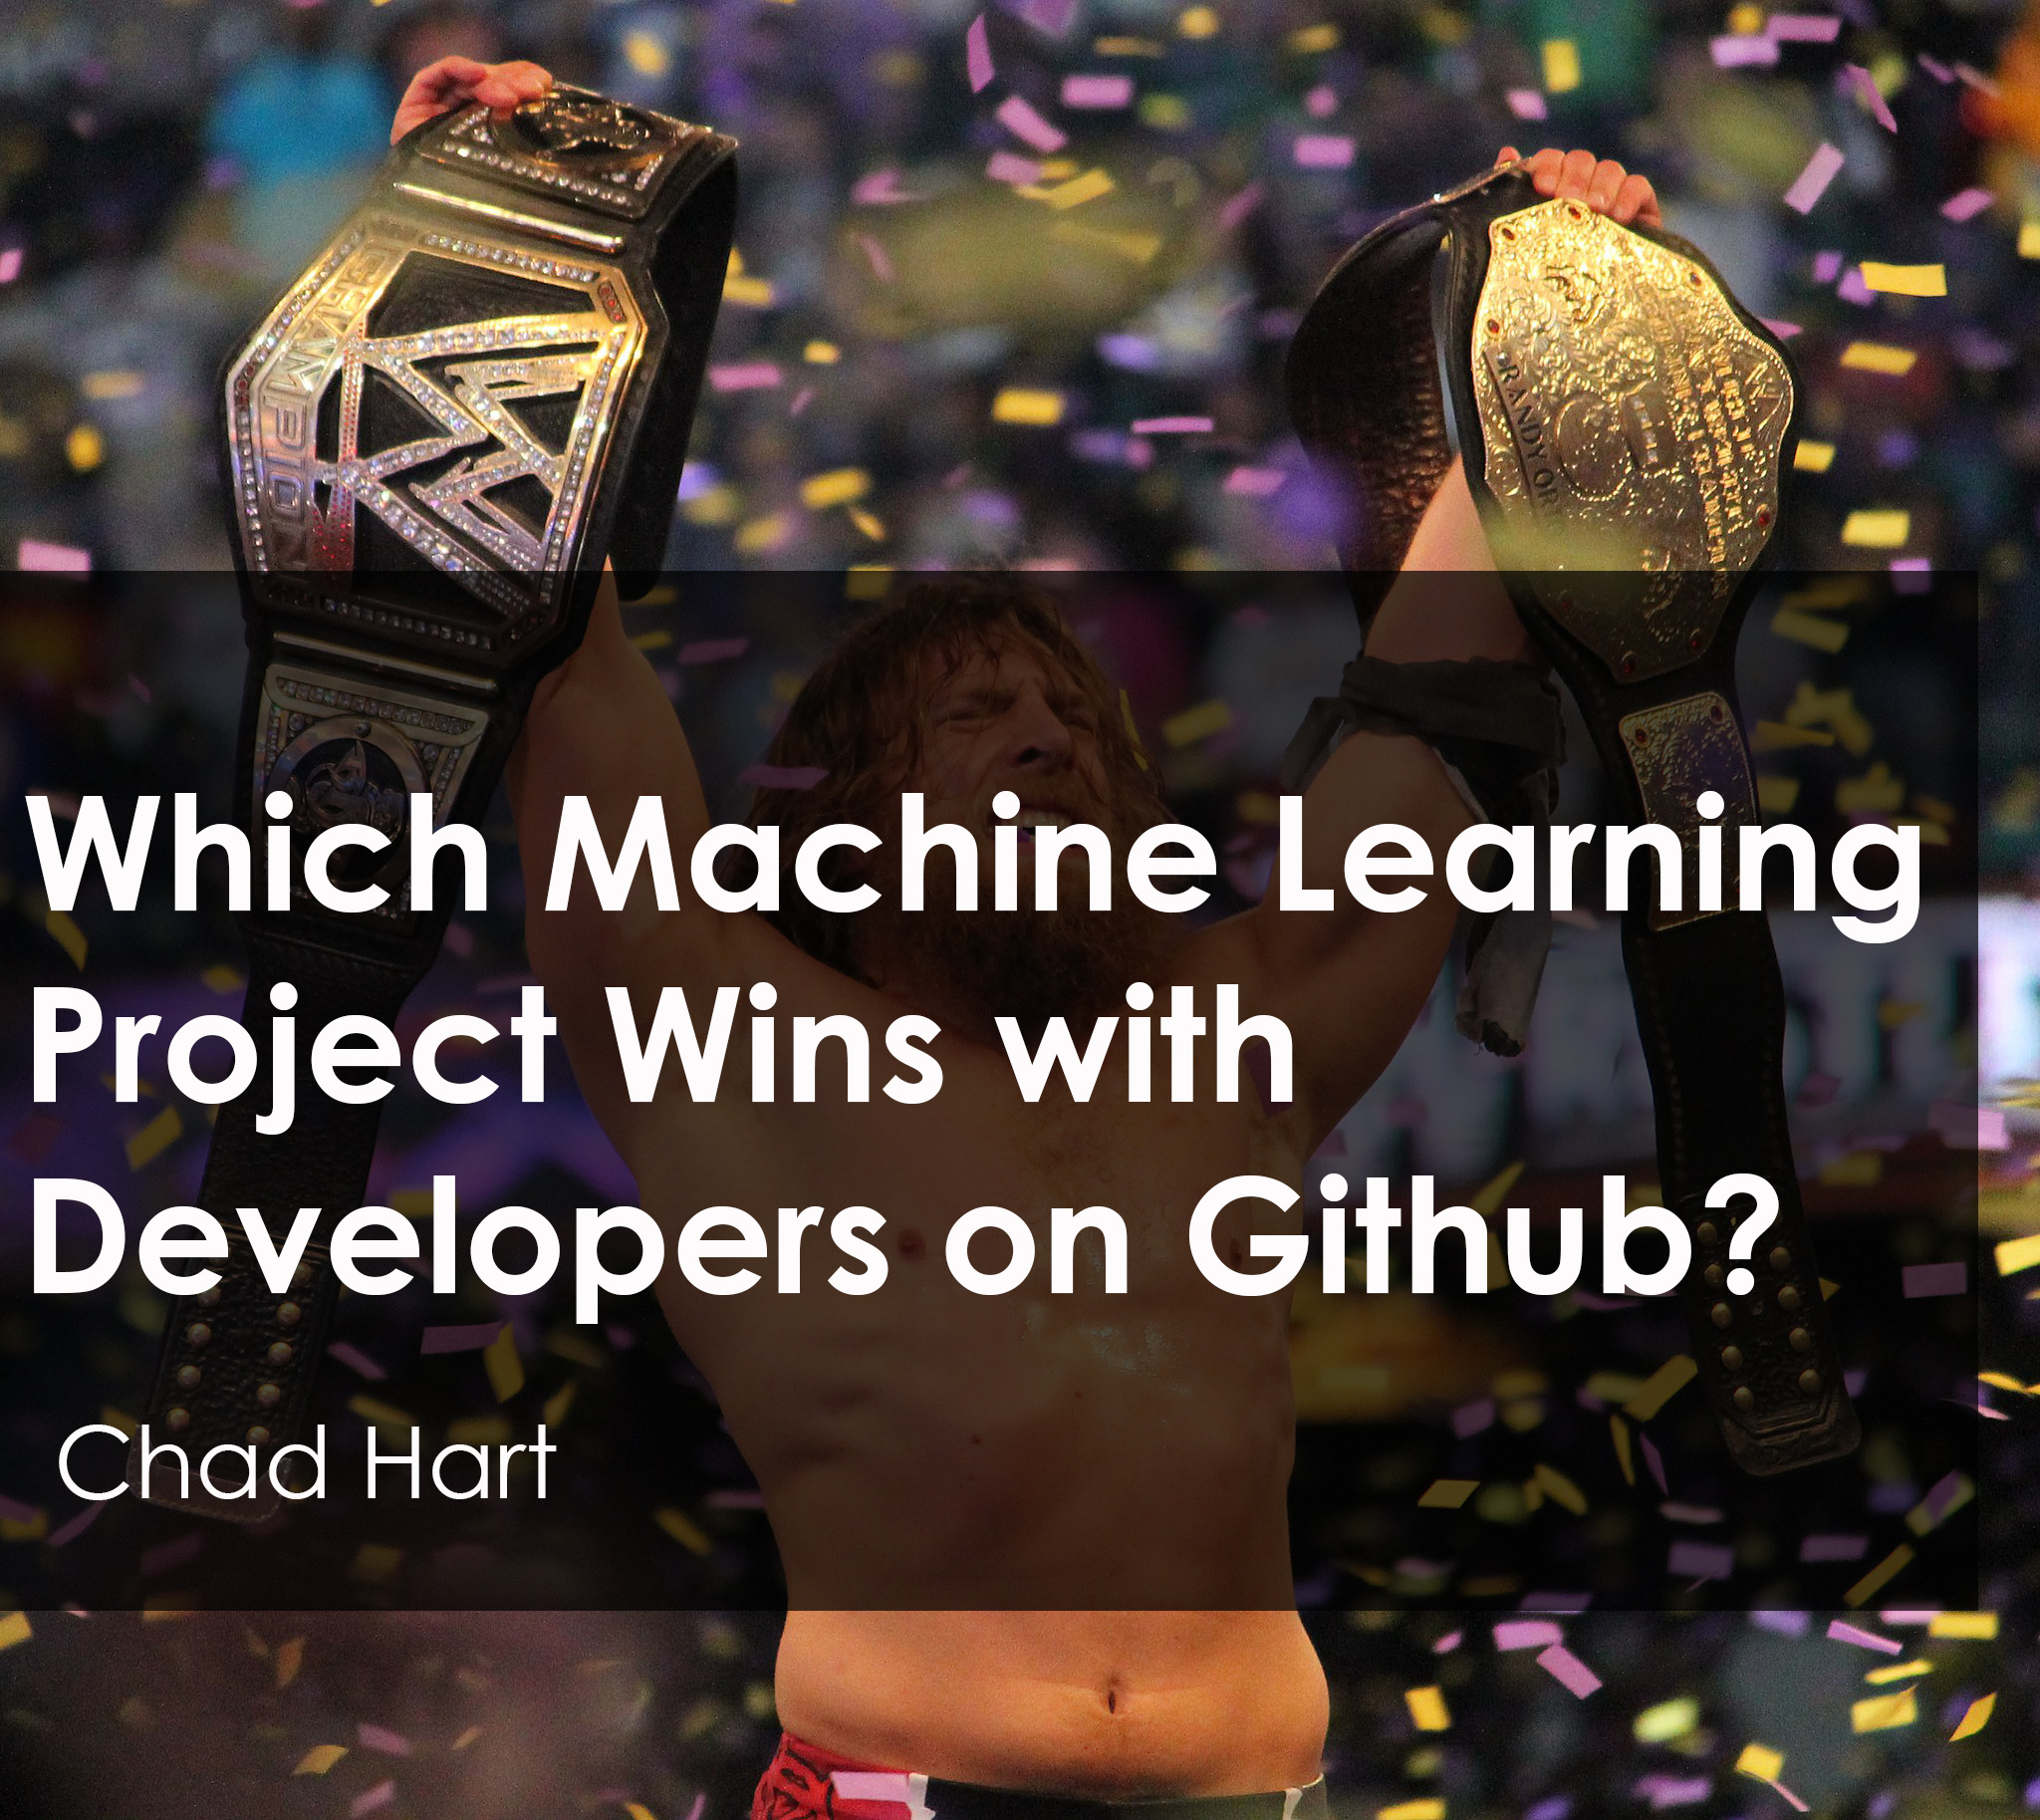 cogint.ai - Which Machine Learning Project Wins with Developers on Github?